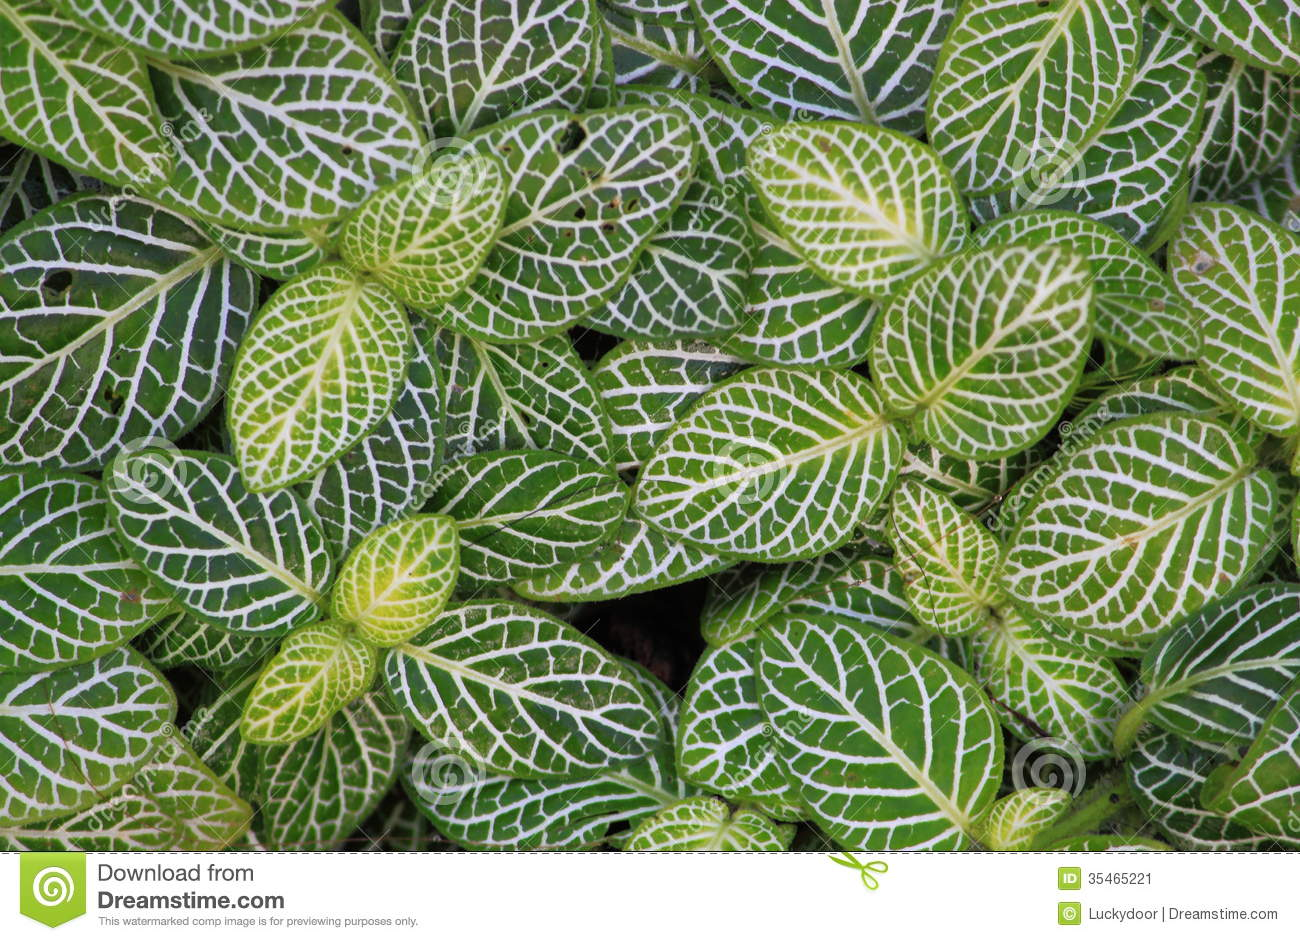 Decorative plants stock image image of leaves background for Decorative plants for garden